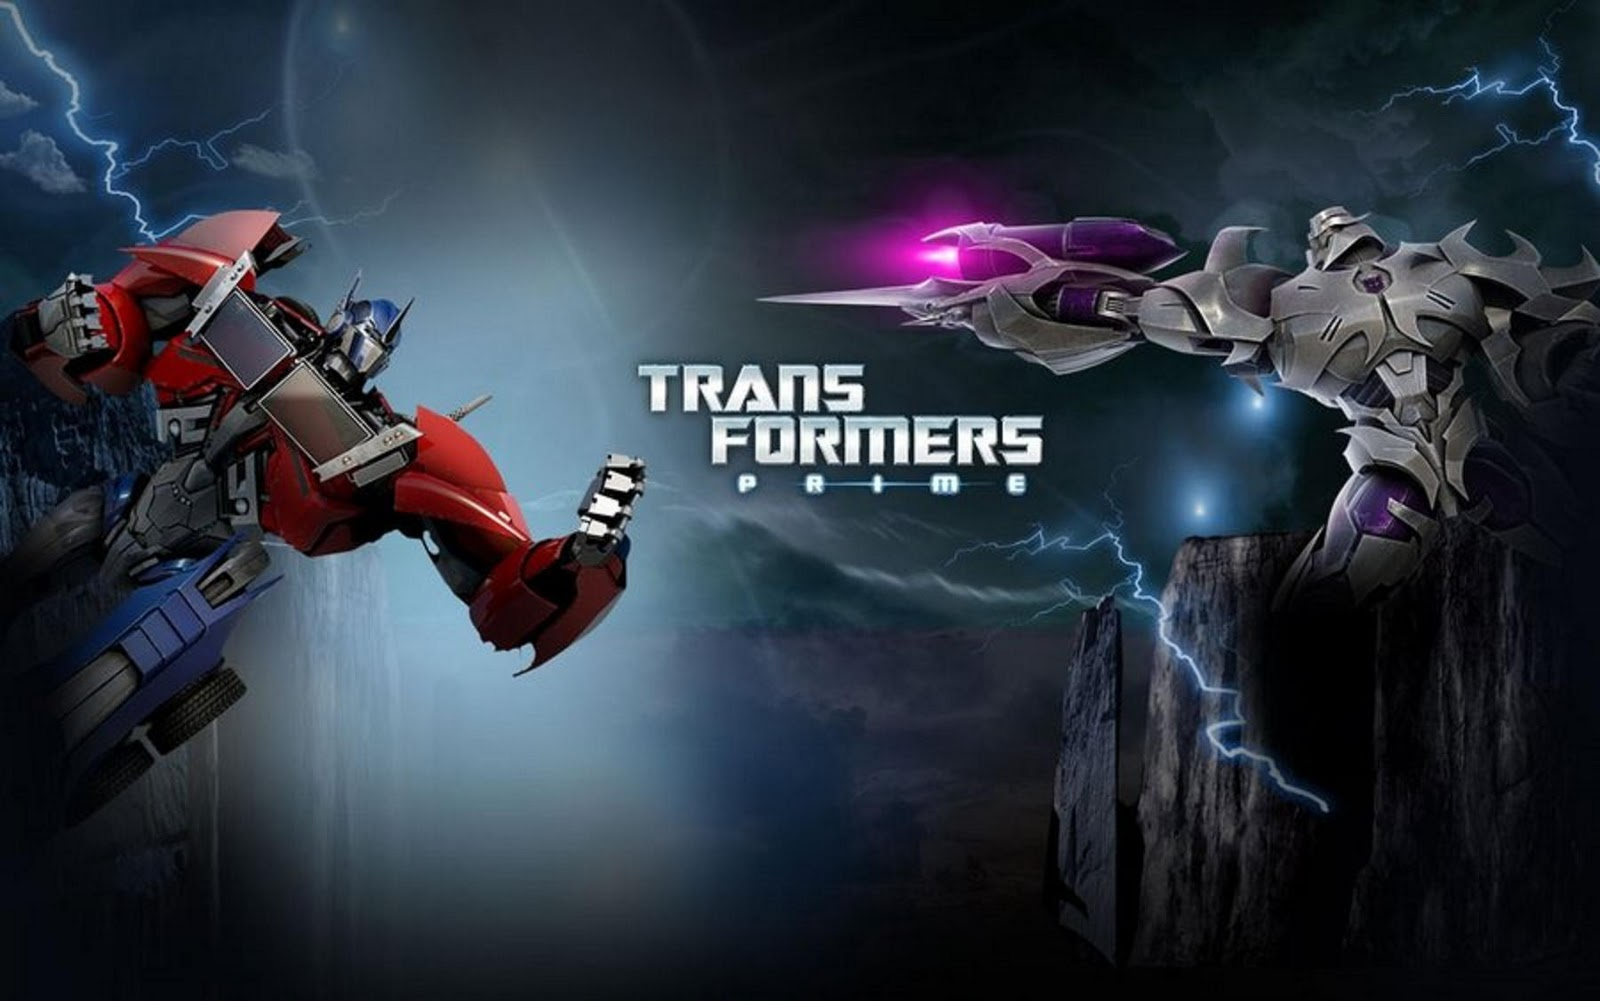 transformers prime wallpapers for computer - wallpapersafari